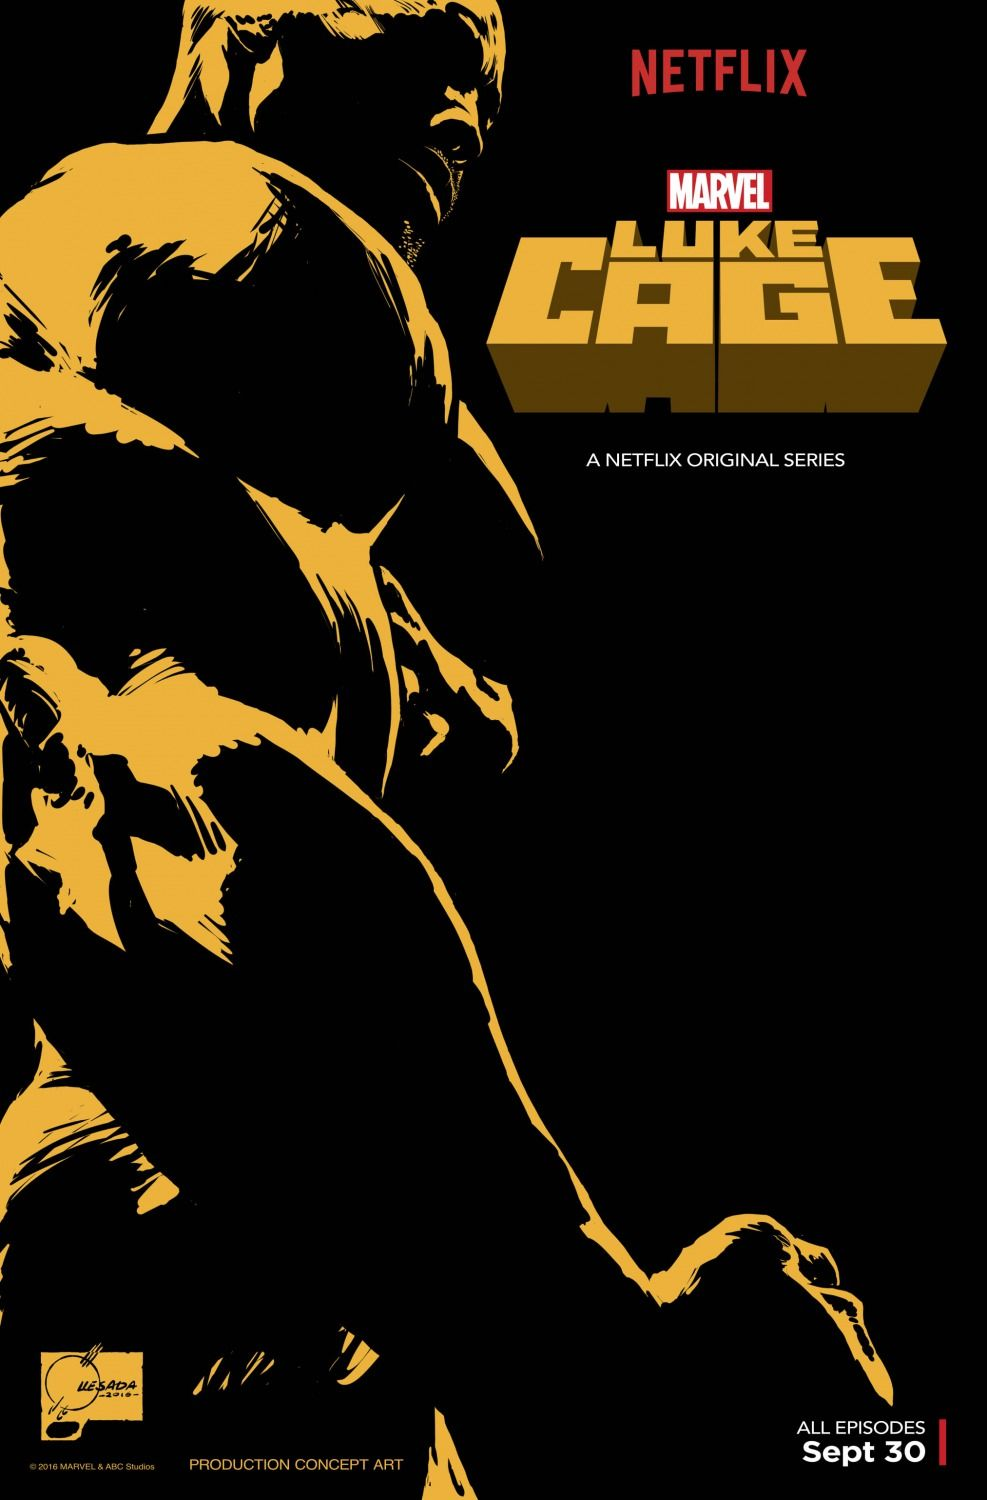 Luke Cage Season 1 Poster Marvel